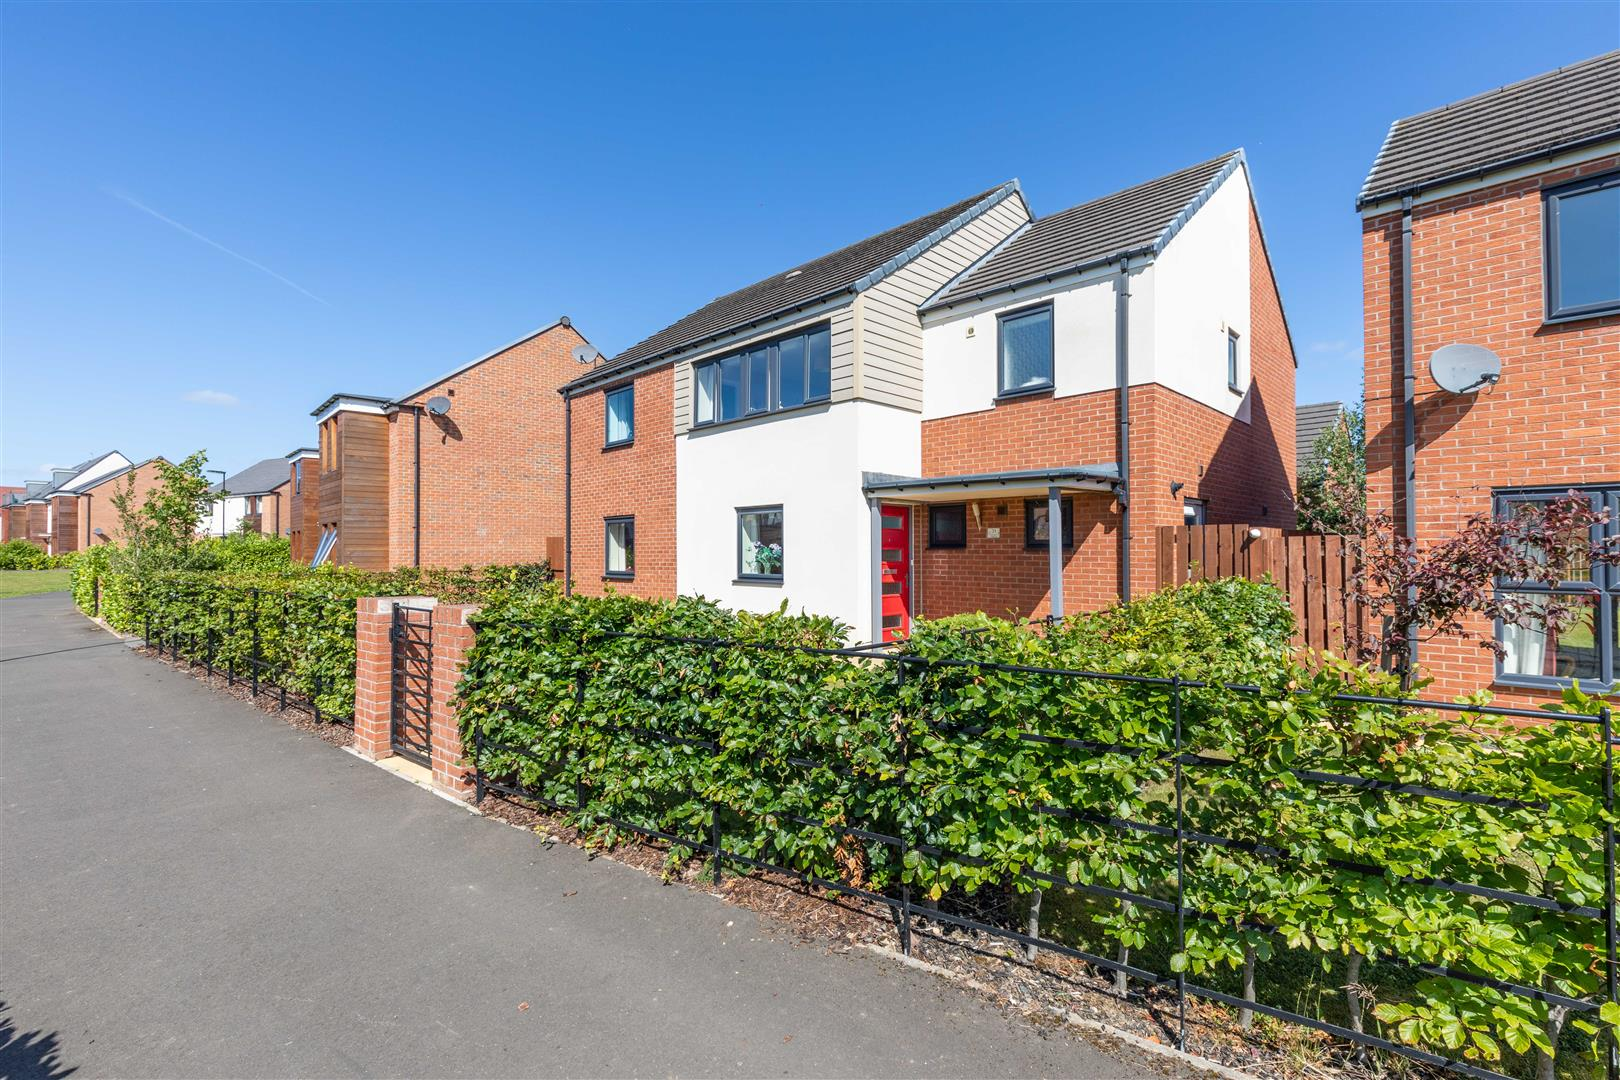 4 bed detached house for sale in Newcastle Upon Tyne, NE13 9AW, NE13